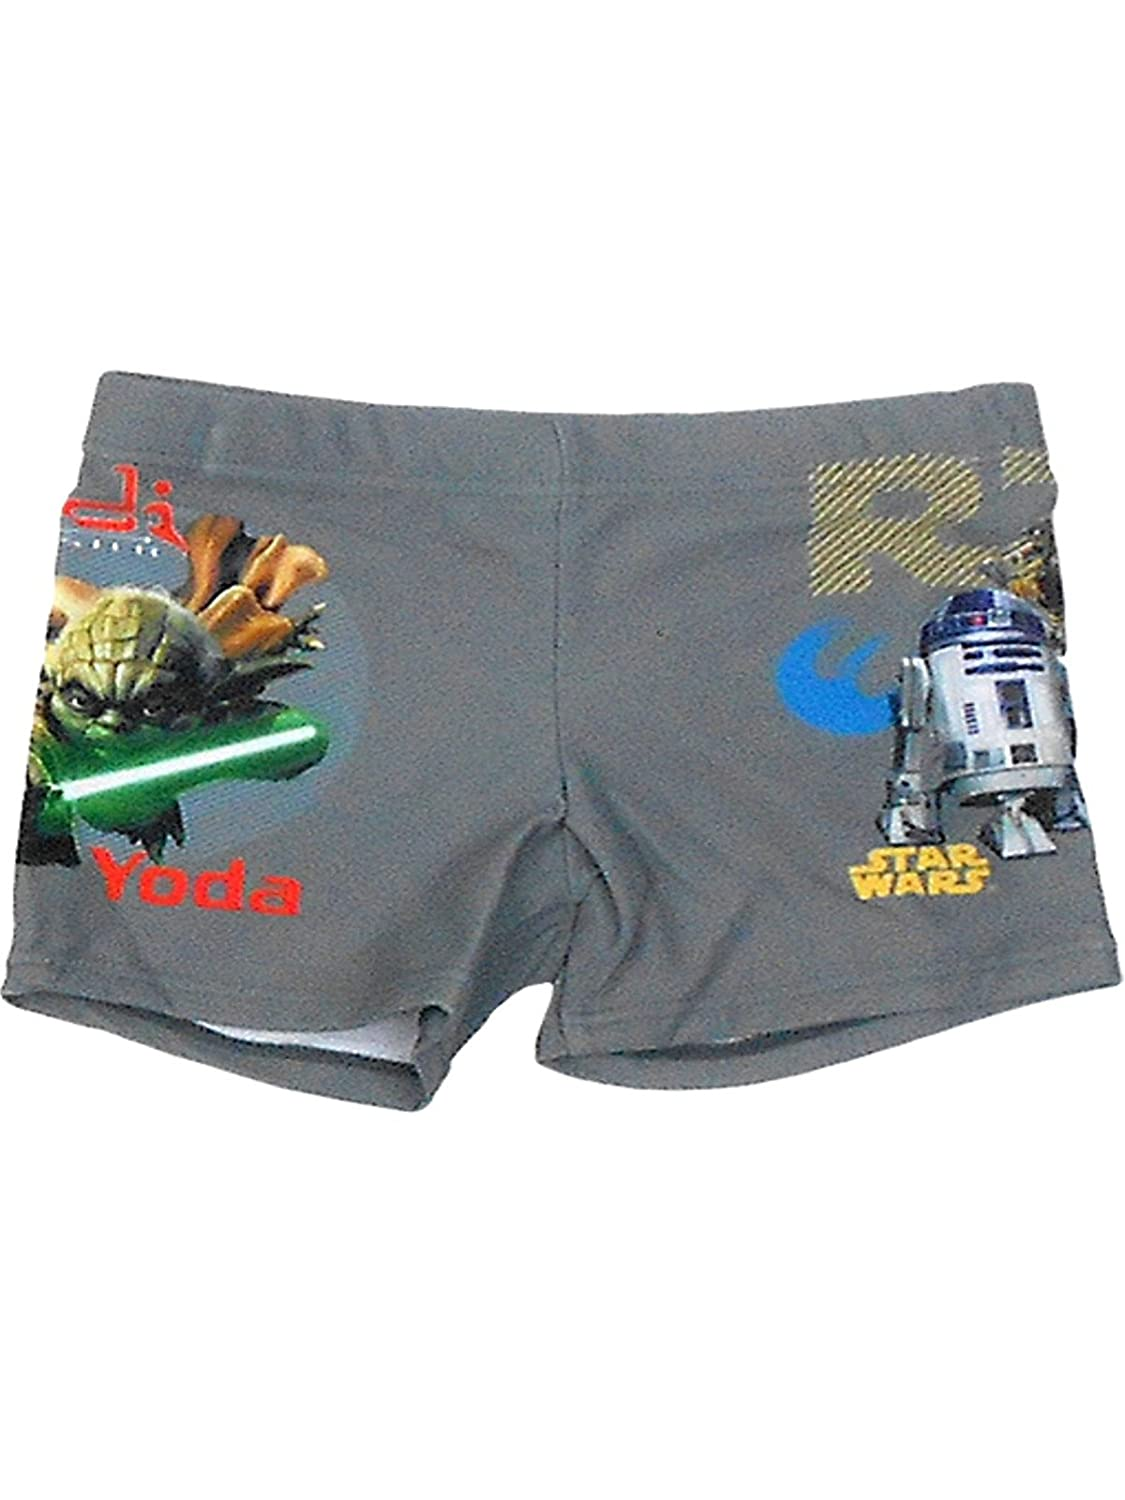 Boys Official Star Wars Swimwear Swimming Shorts Age 2 to 8 Years